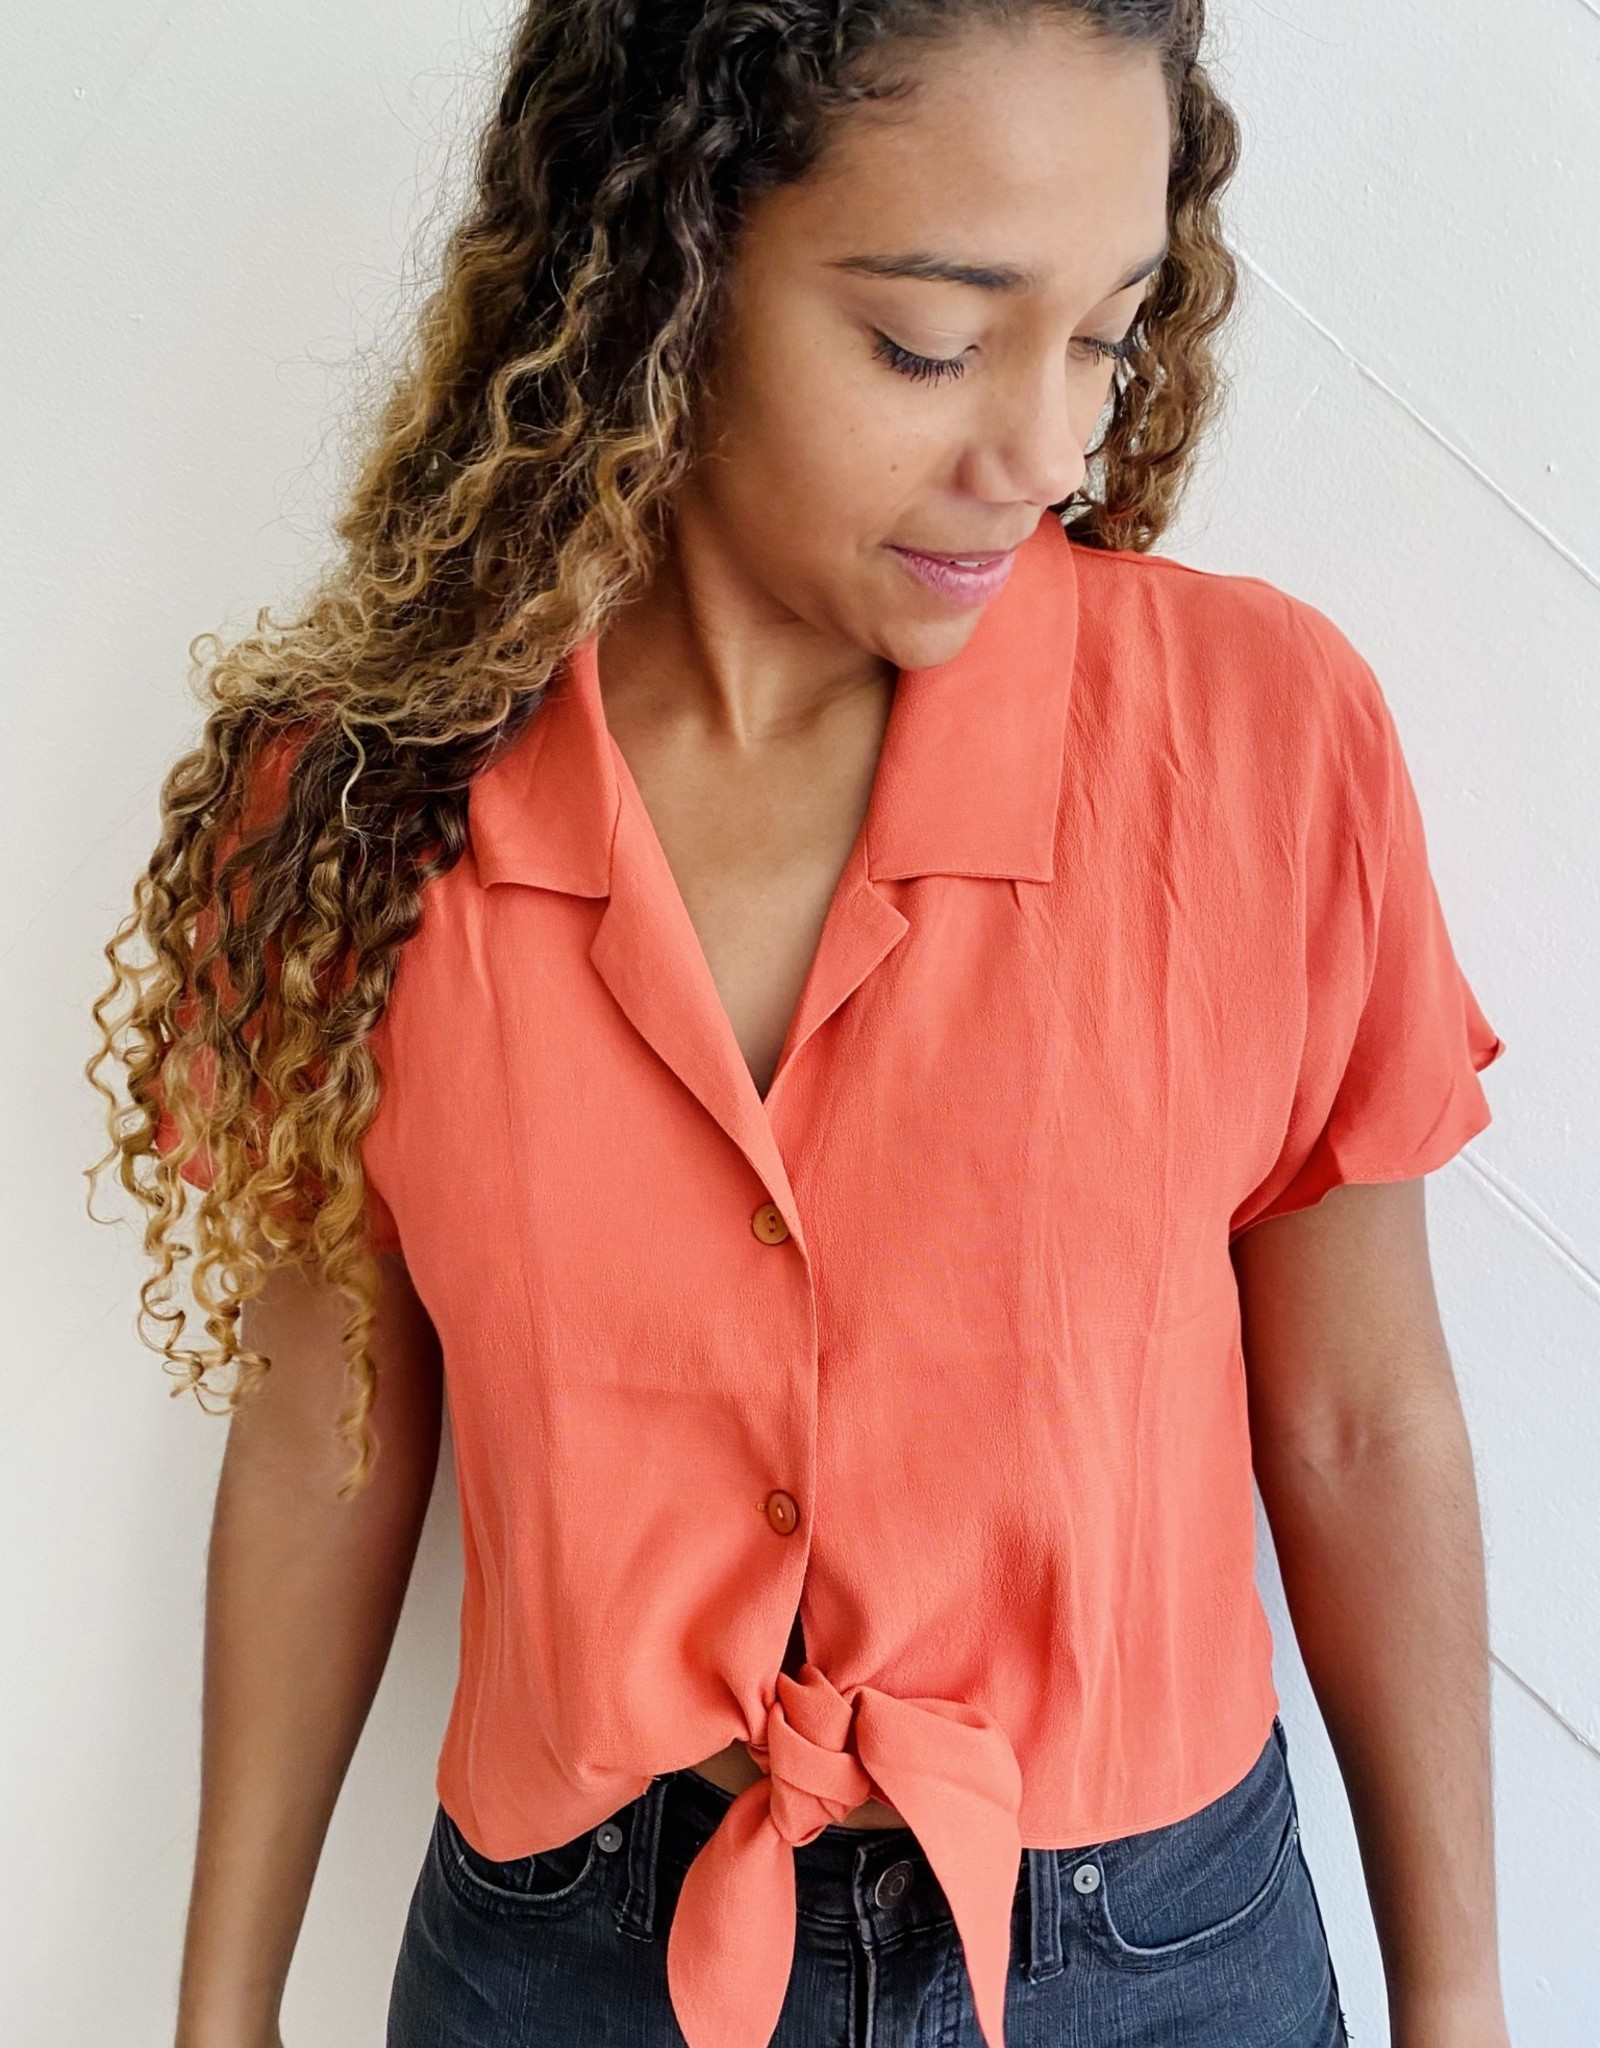 Halo Tangerine Collared Top